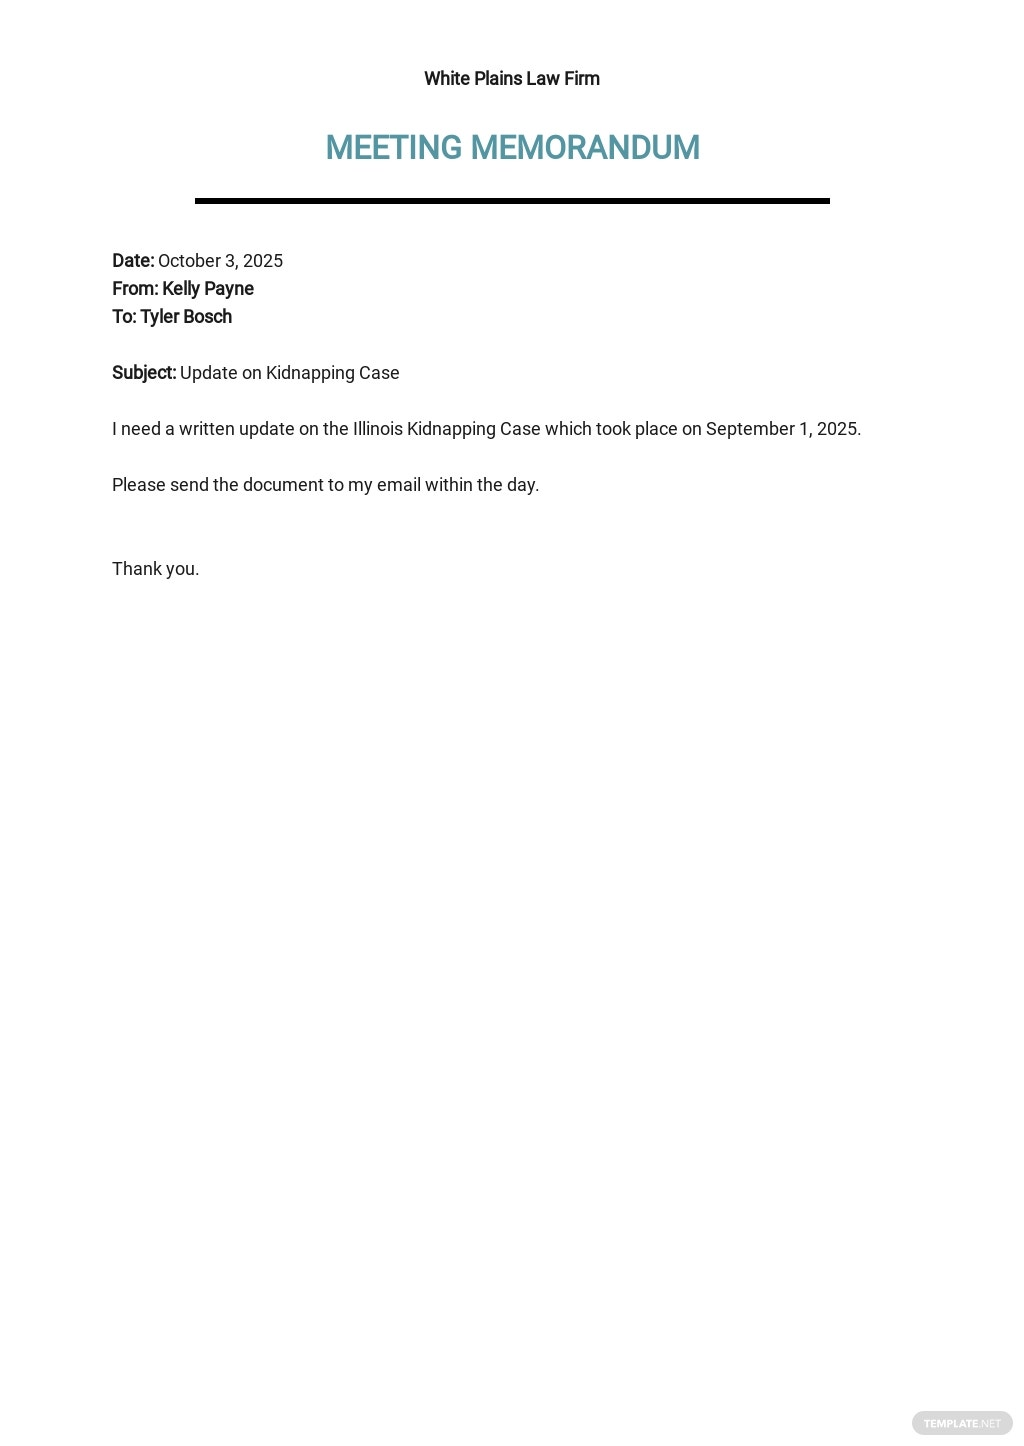 Internal Legal Memo Template